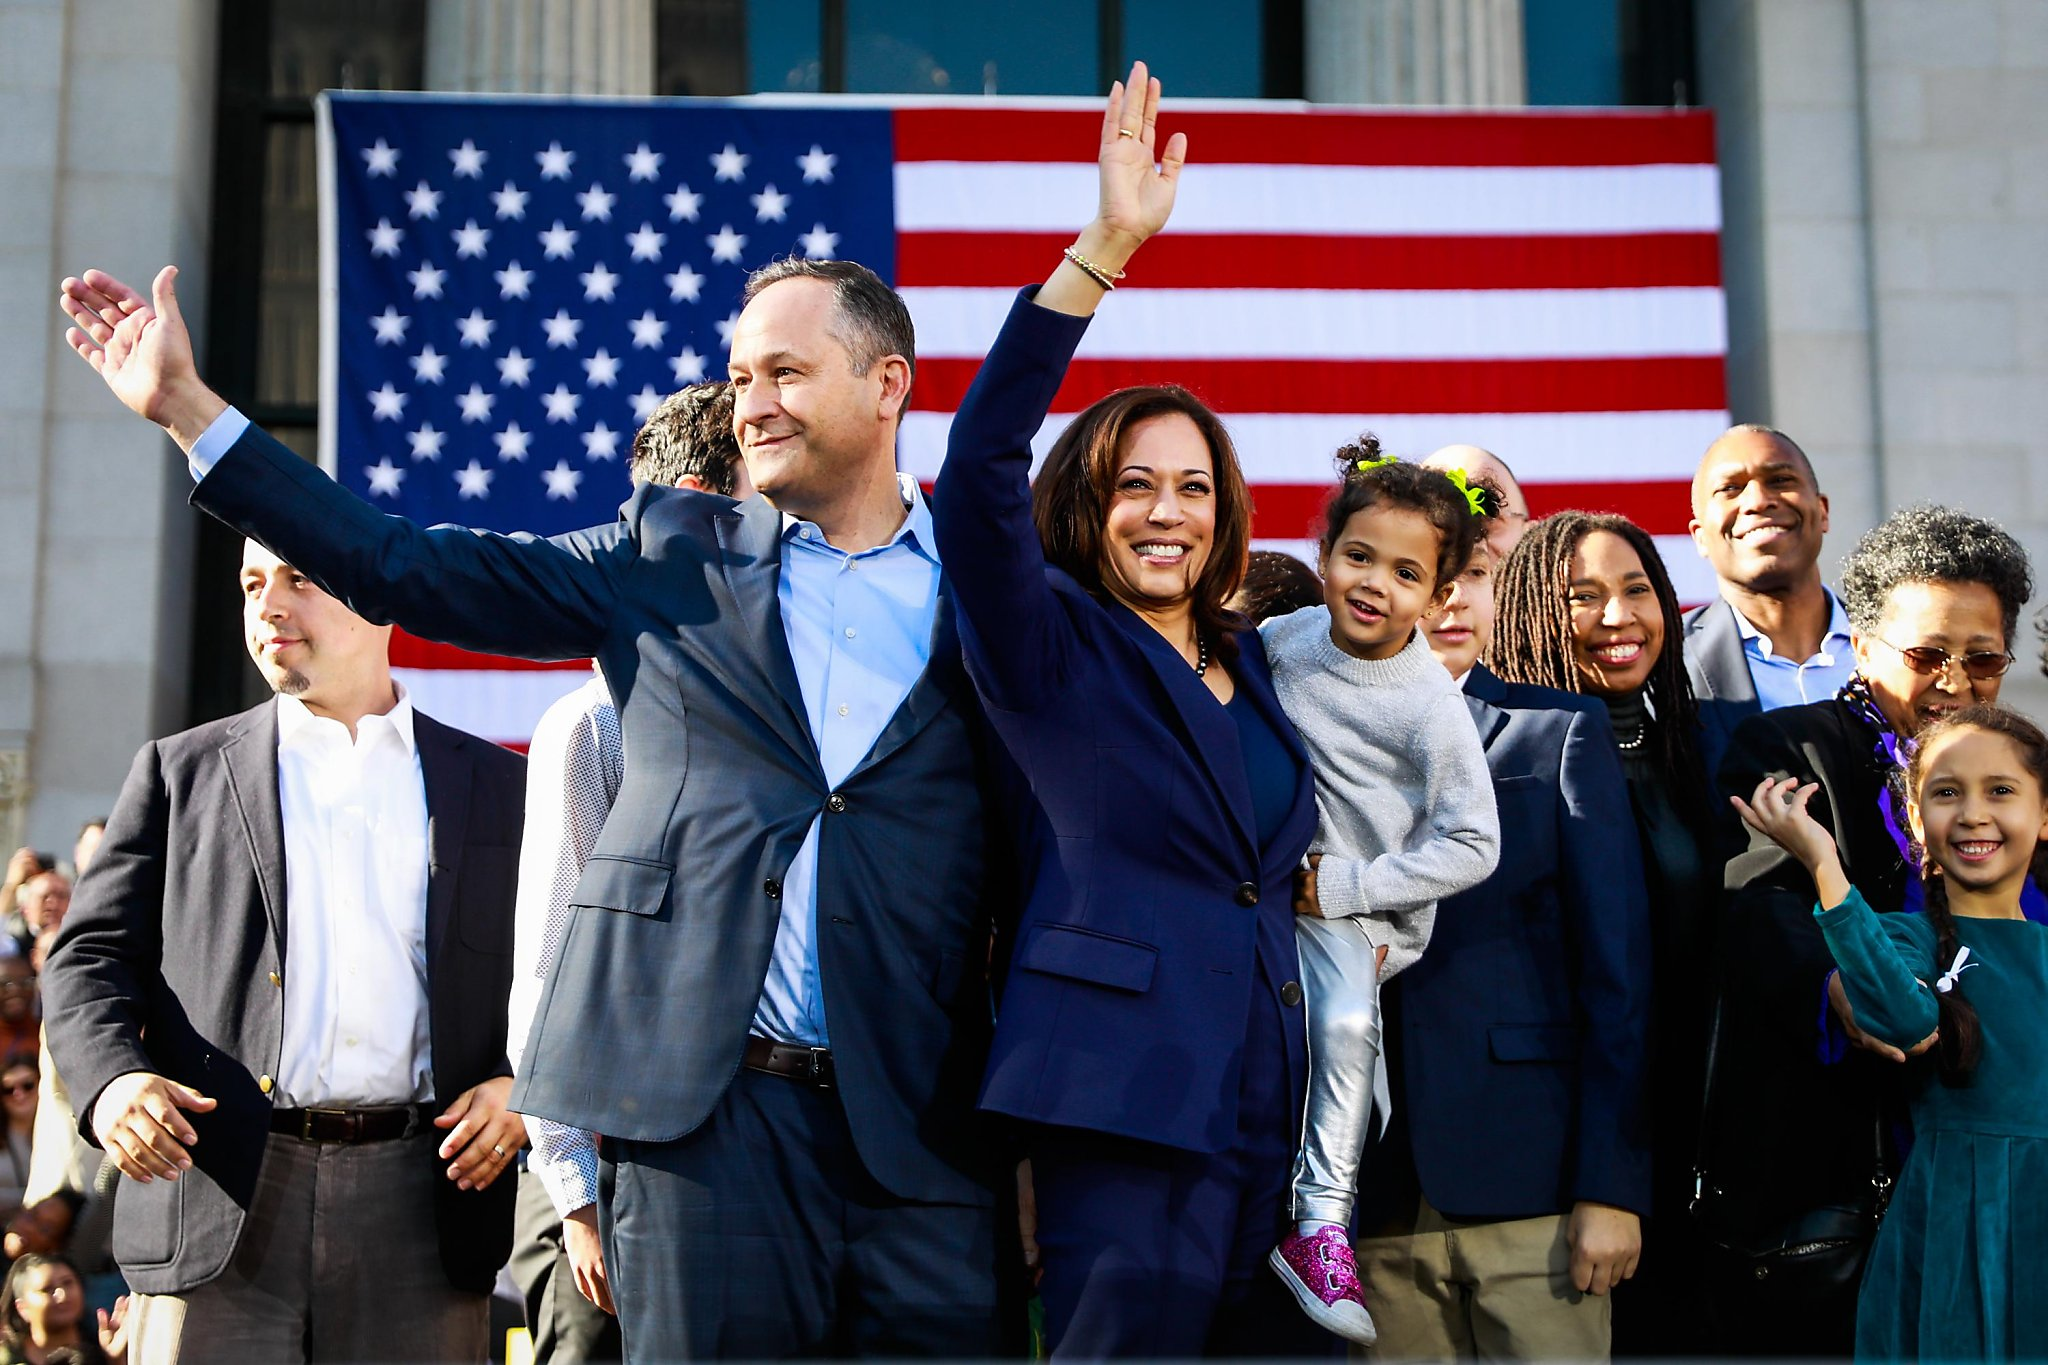 Who is Doug Emhoff? Quick facts to know about VP-elect Kamala Harris' husband